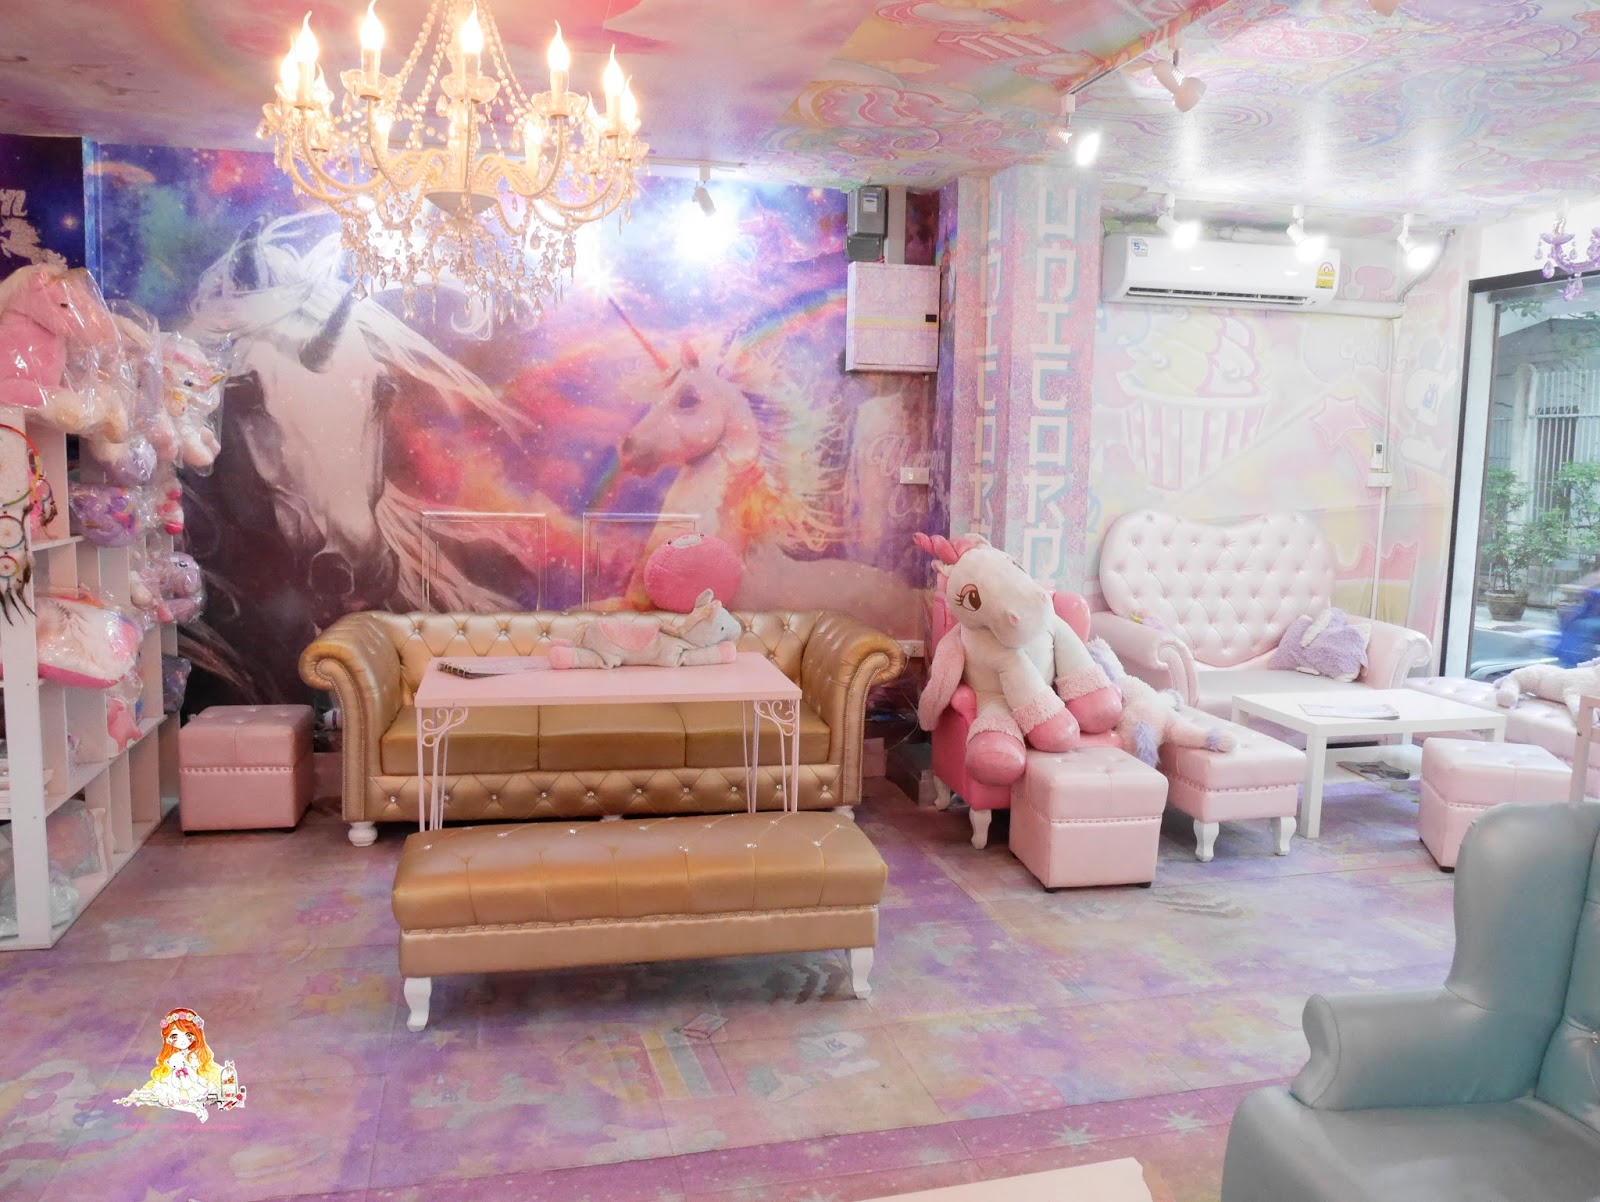 ✿ ❤ melody loves ❤ ✿: dreamy pastel cafe in bangkok - unicorn cafe